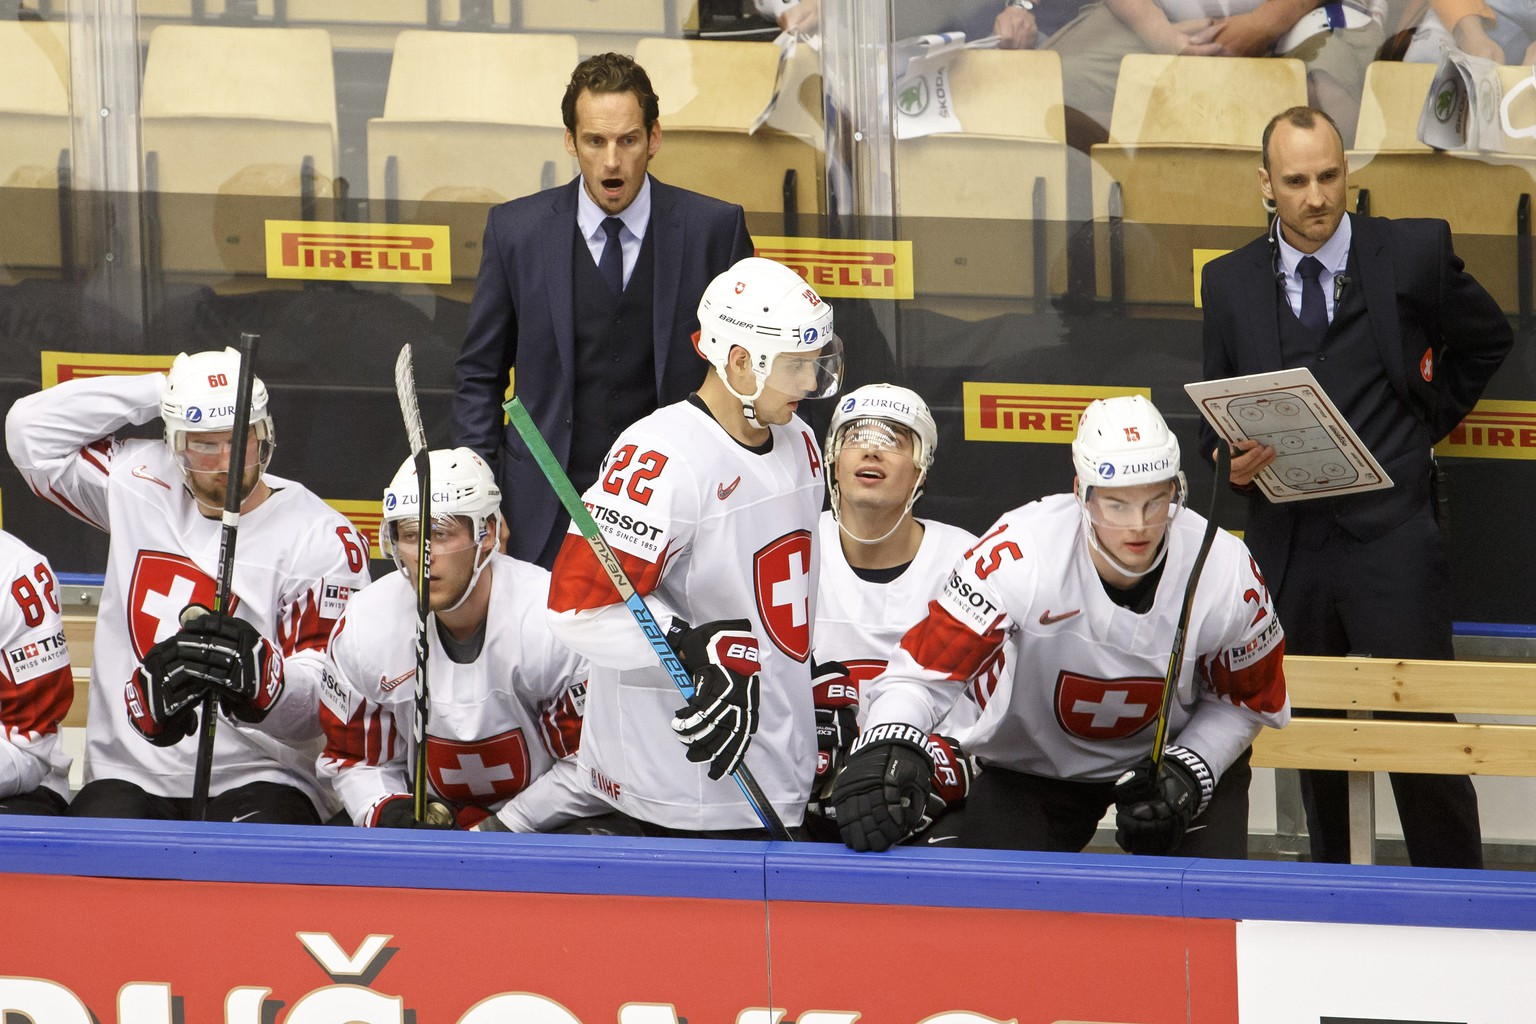 ARCHIVBILD ZUR MELDUNG, DASS CHRISTIAN WOHLWEND NEUER DAVOS-TRAINER WIRD --- Patrick Fischer, left, head coach of Switzerland national ice hockey team, next to Christian Wohlwend, right, assistant coach of Switzerland national ice hockey team, talks to his players, during the IIHF 2018 World Championship quarter final game between Finland and Switzerland, at the Jyske Bank Boxen, in Herning, Denmark, Thursday, May 17, 2018. (KEYSTONE/Salvatore Di Nolfi)